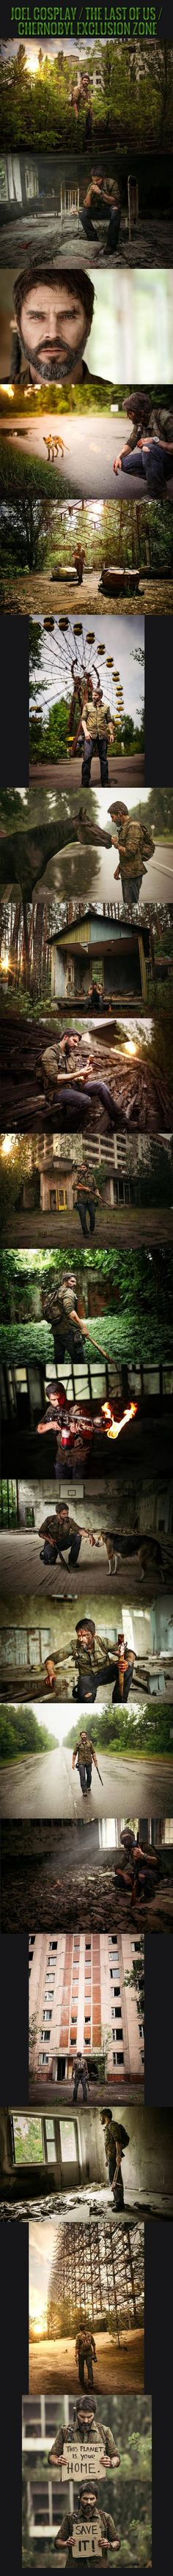 "Epic ""The Last Of Us"" cosplay in Chernobyl exclusion zone."